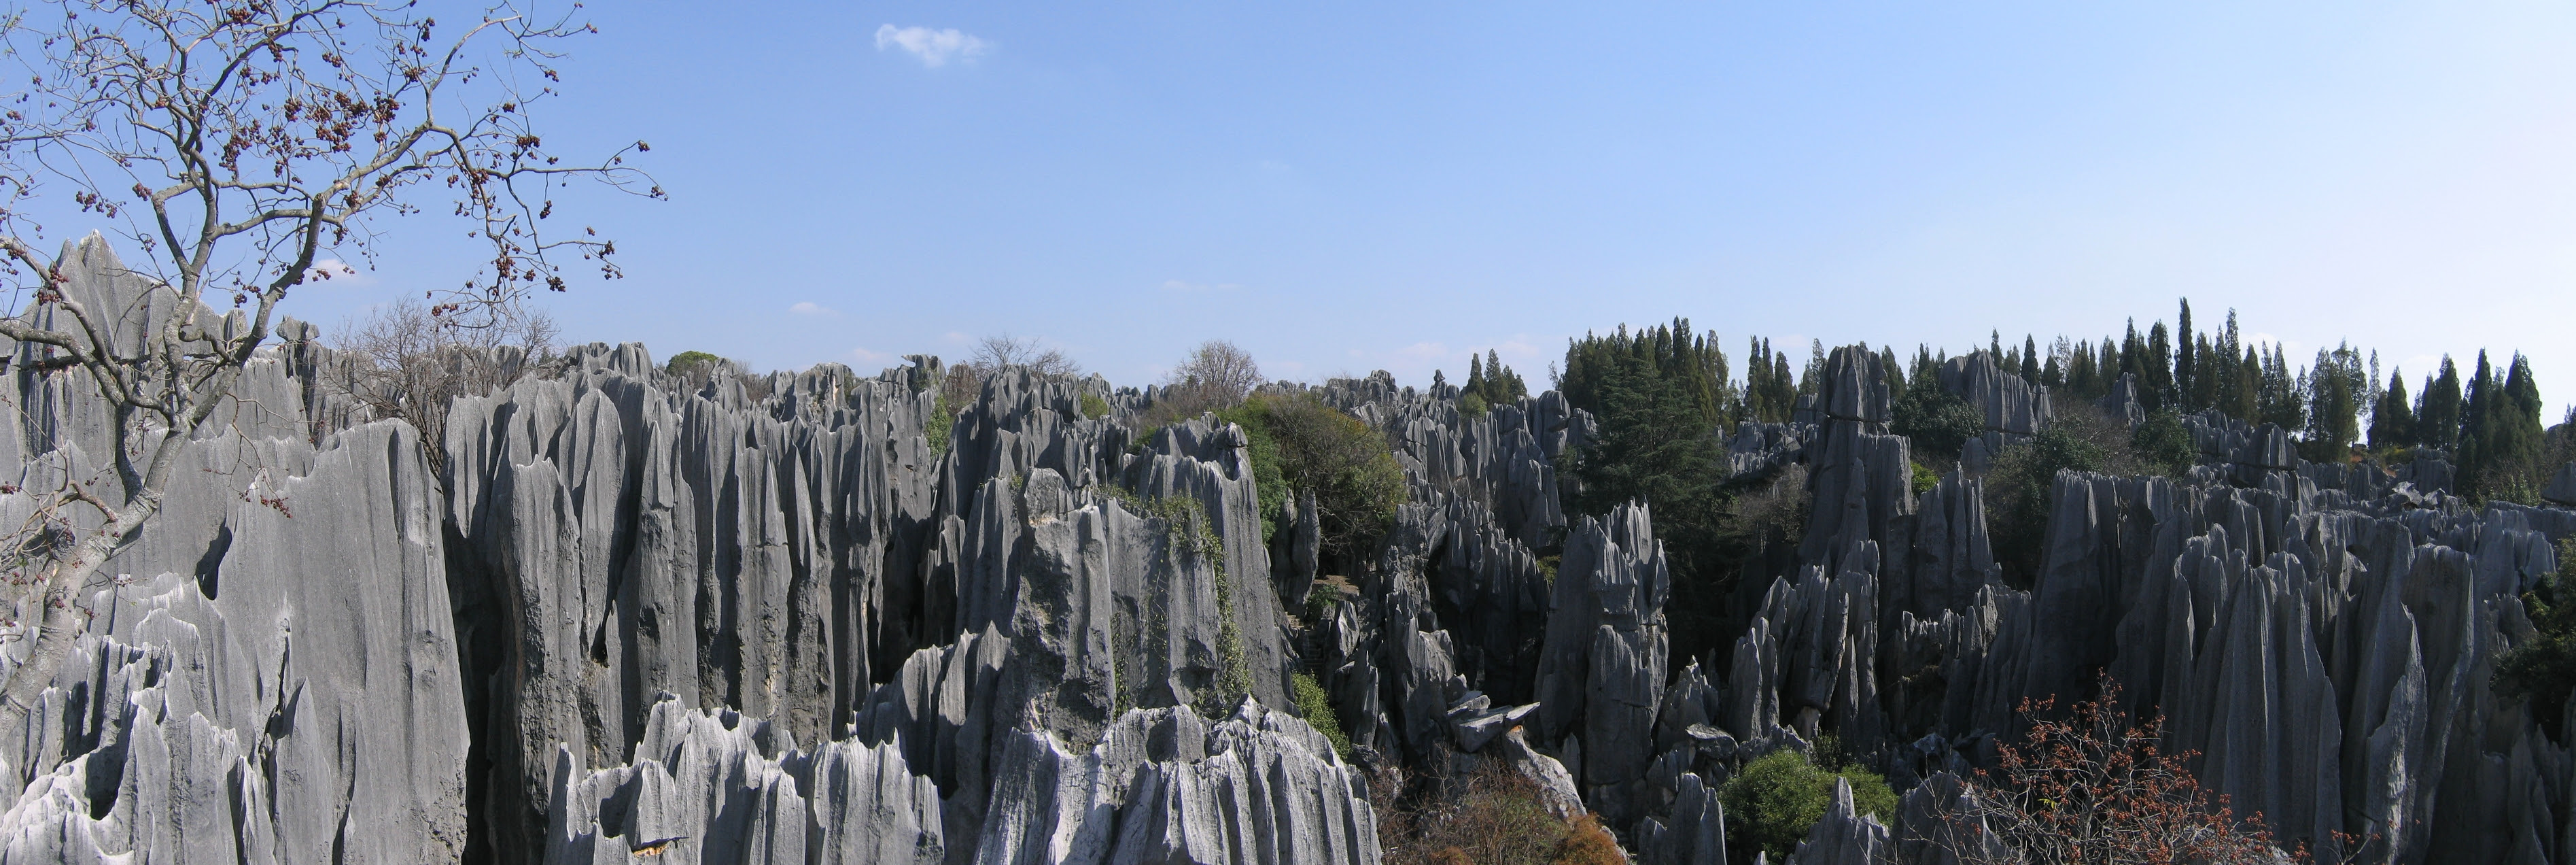 http://upload.wikimedia.org/wikipedia/commons/9/92/Stone_Forest_Panorama.jpg